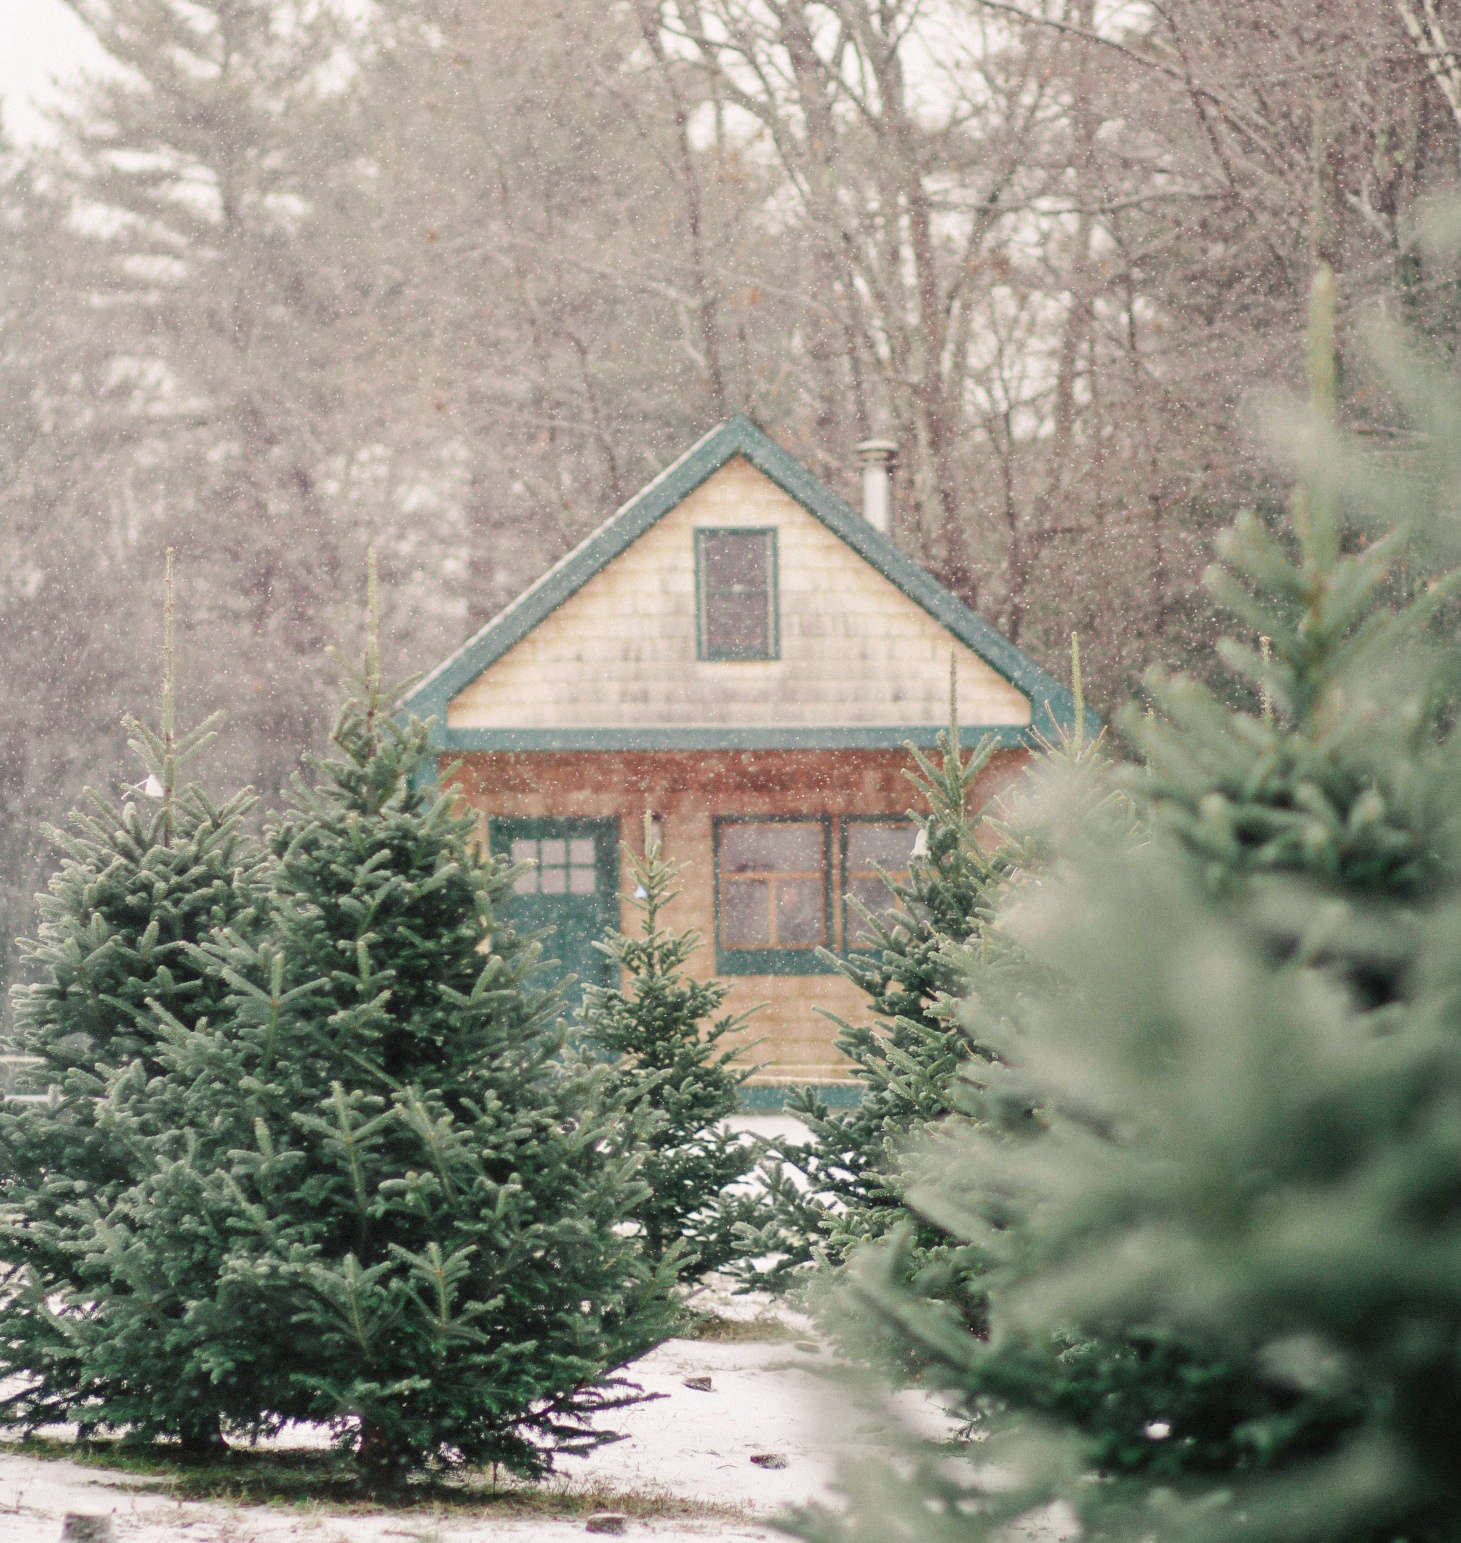 Christmas Tree Farm Network: Cooking Consistency With KitchenAid® Even-Heat™ Technology